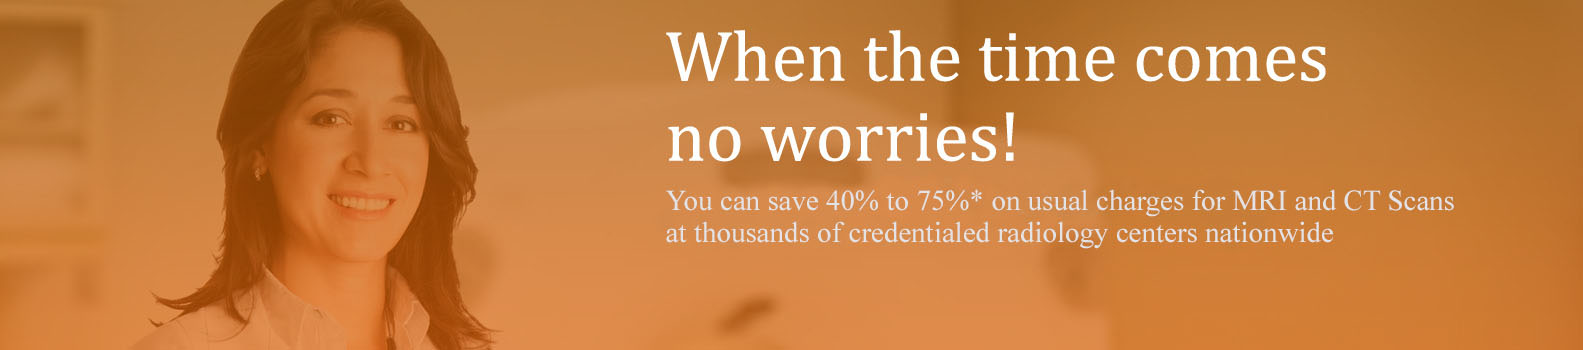 You can save 40% to 75%* on usual charges for MRI and CT Scans